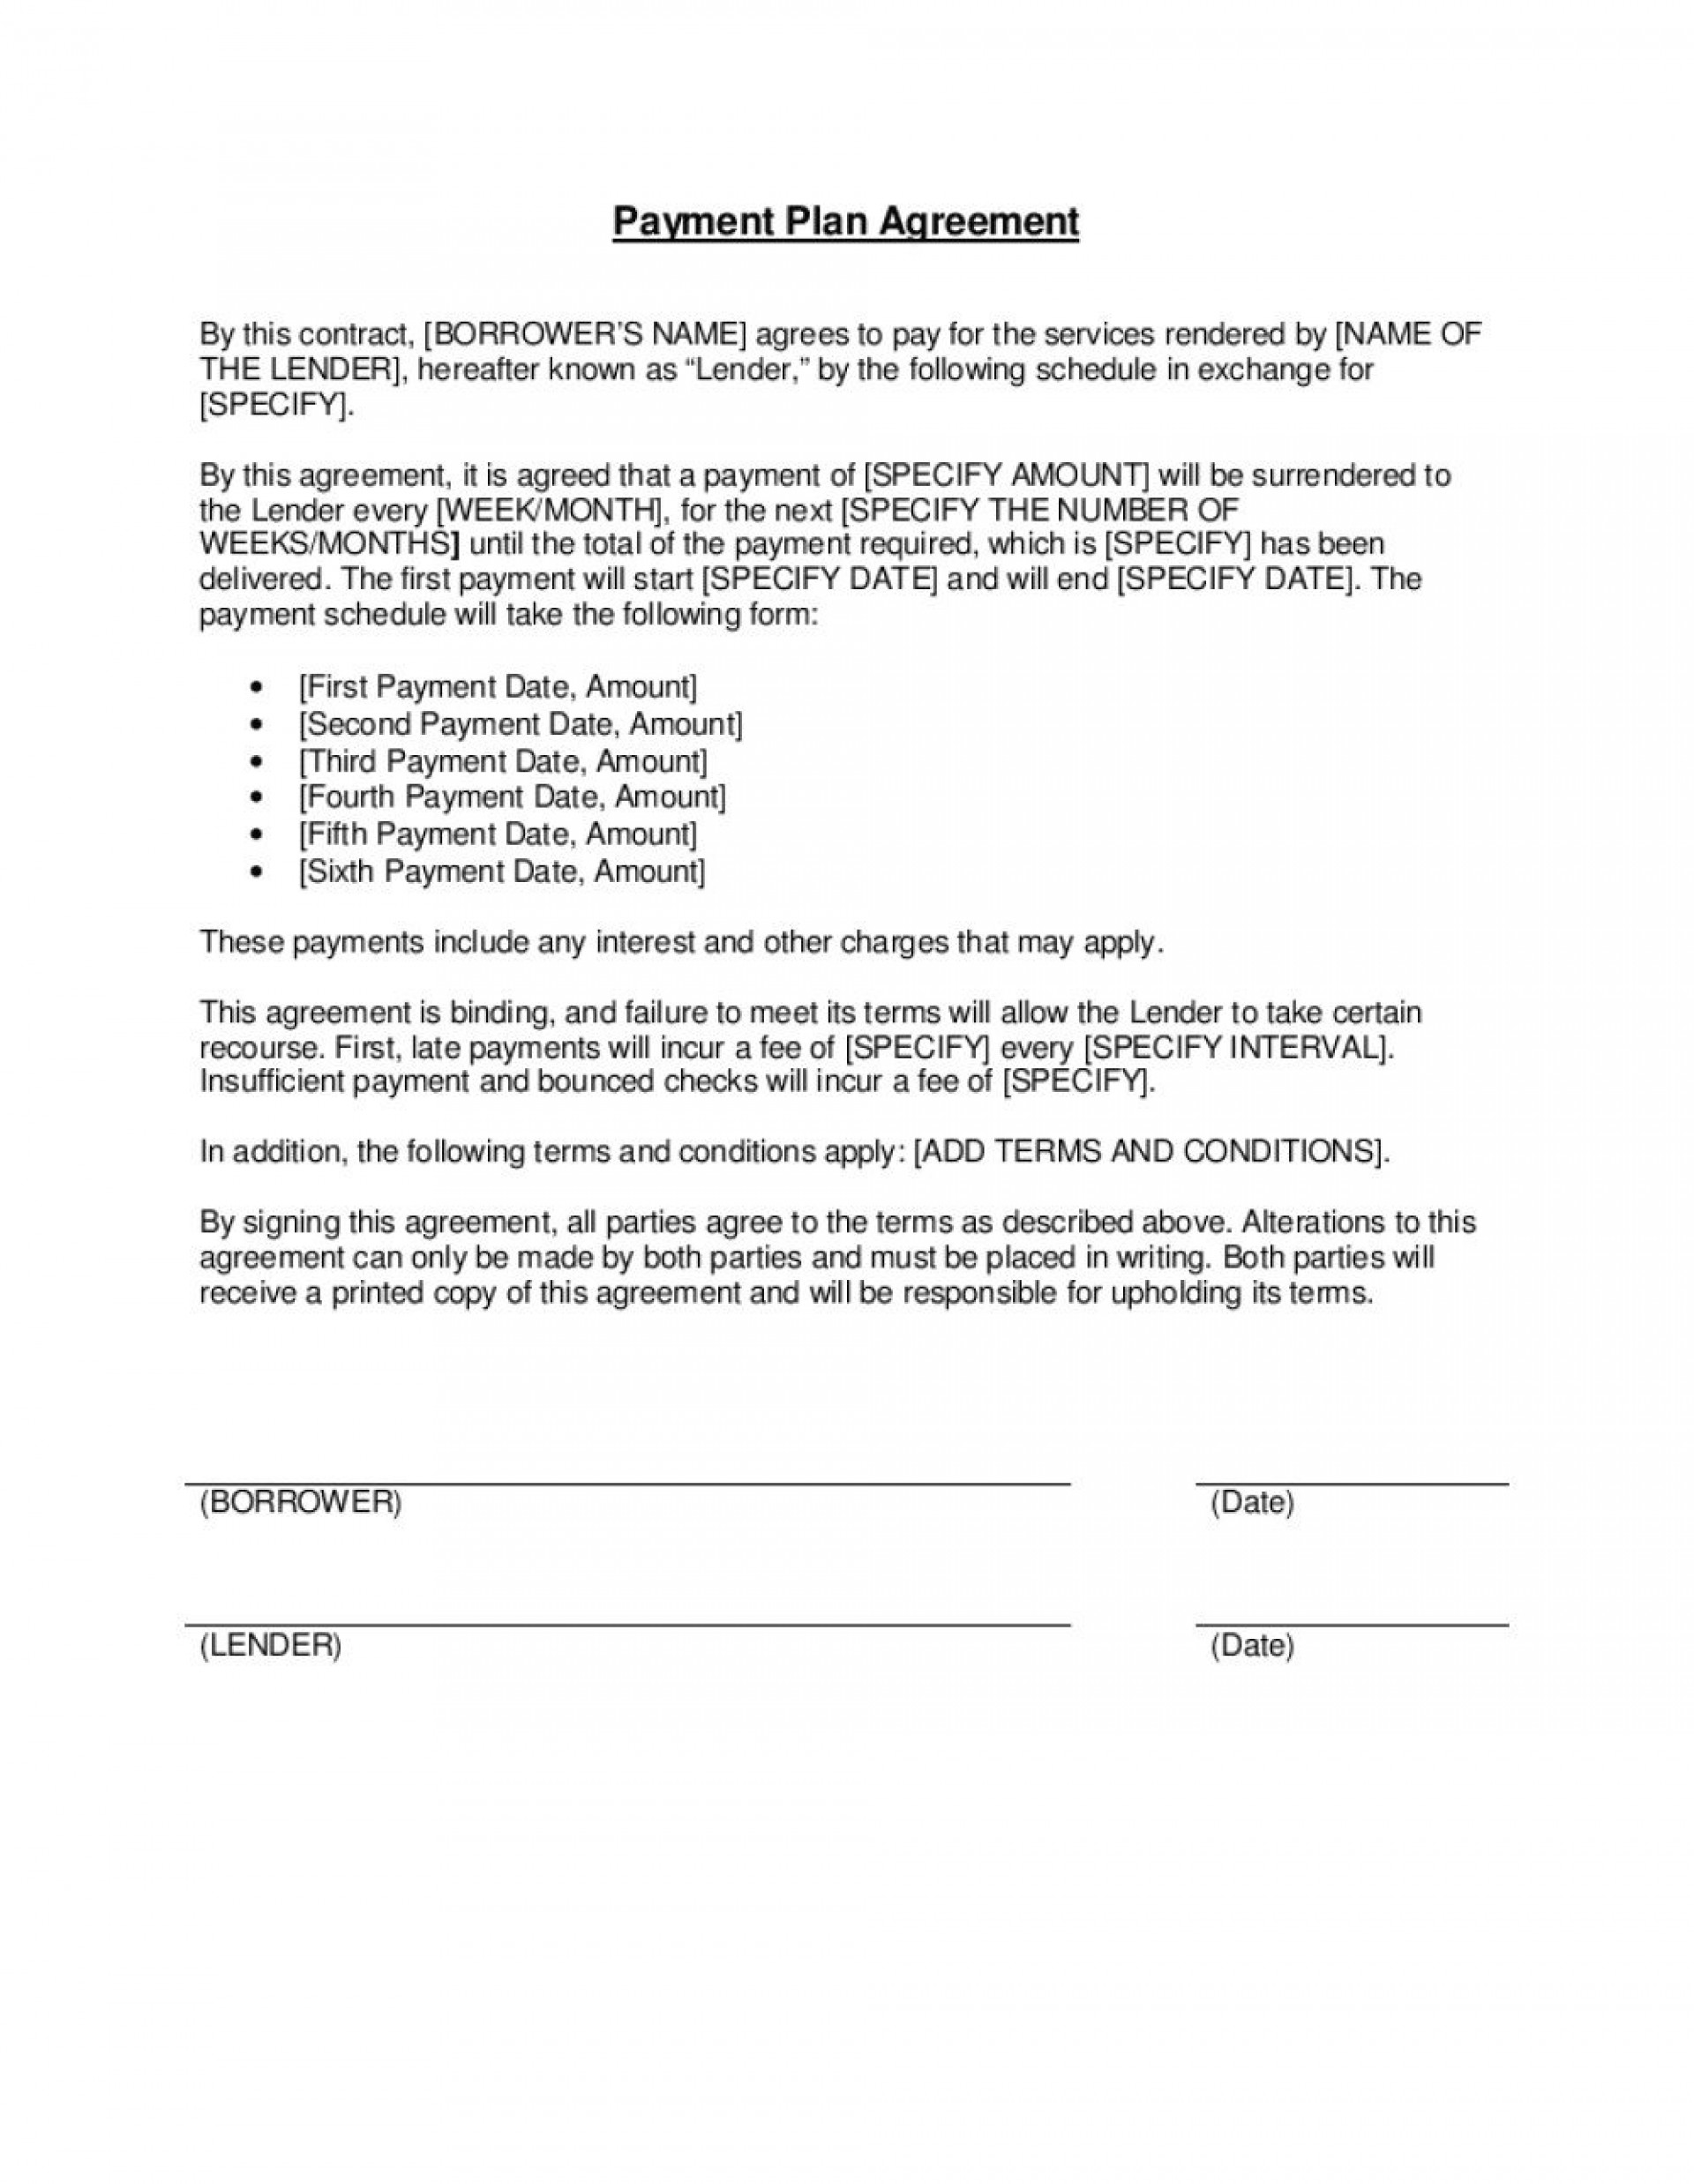 009 Stunning Installment Payment Contract Template Inspiration  Agreement Free Car Word1920